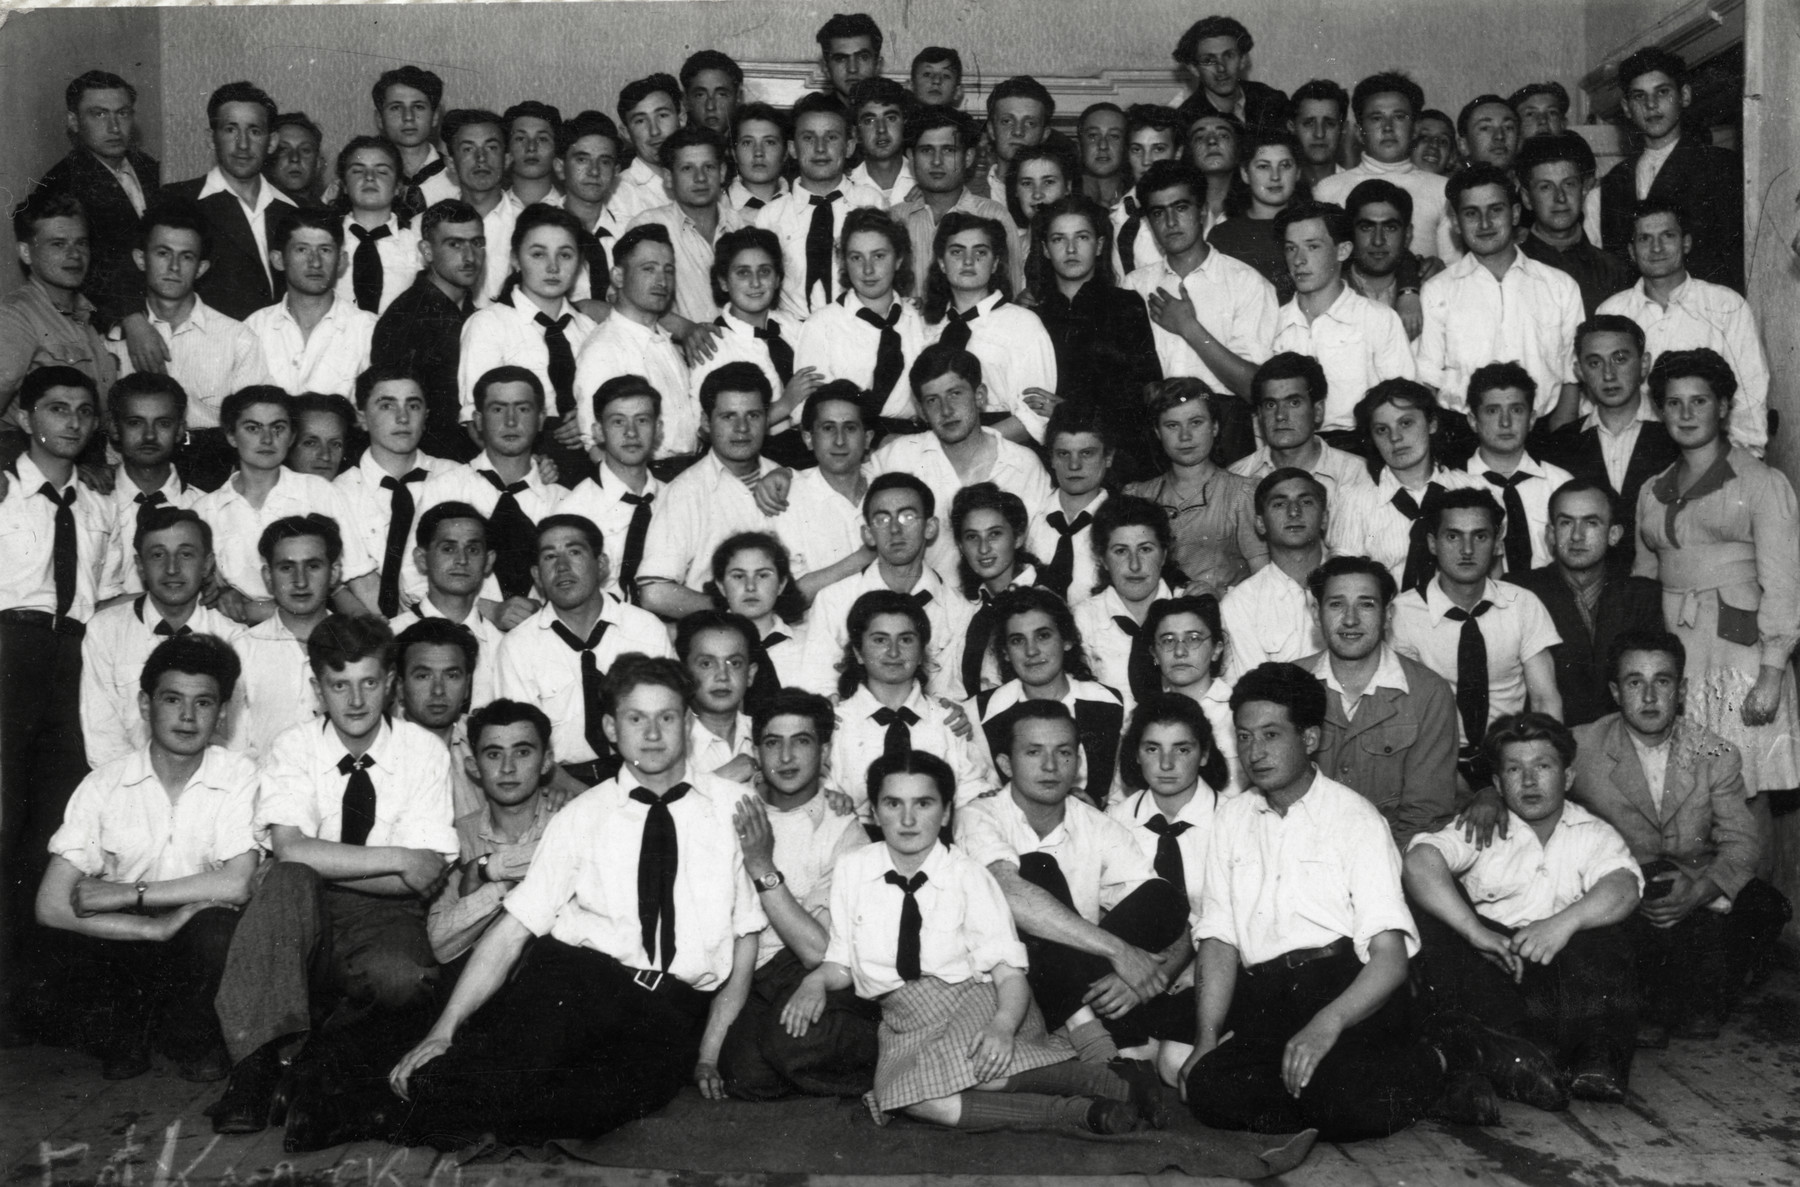 Group portrait of Zionist youth in a kibbutz in Lodz.    Ita Shapiro is pictured in the front row, 3rd from the right.